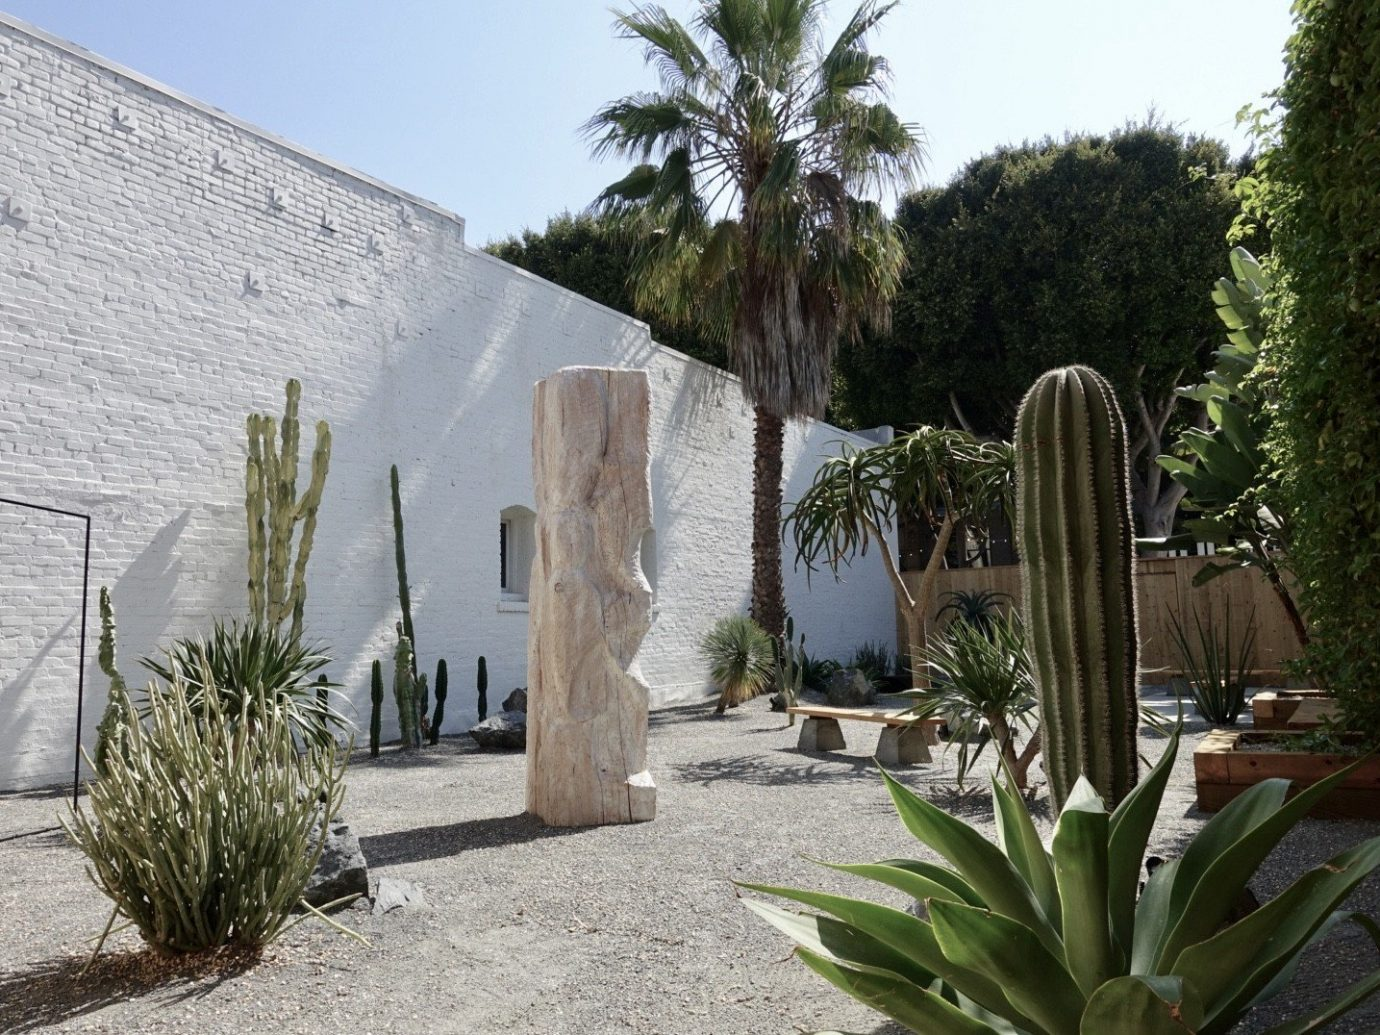 Arts + Culture Hotels Jetsetter Guides shopping Travel Trends Trip Ideas sky tree outdoor property plant agave arecales palm tree cactus landscaping Courtyard Garden real estate yard flower backyard outdoor structure Villa hacienda estate landscape flowerpot